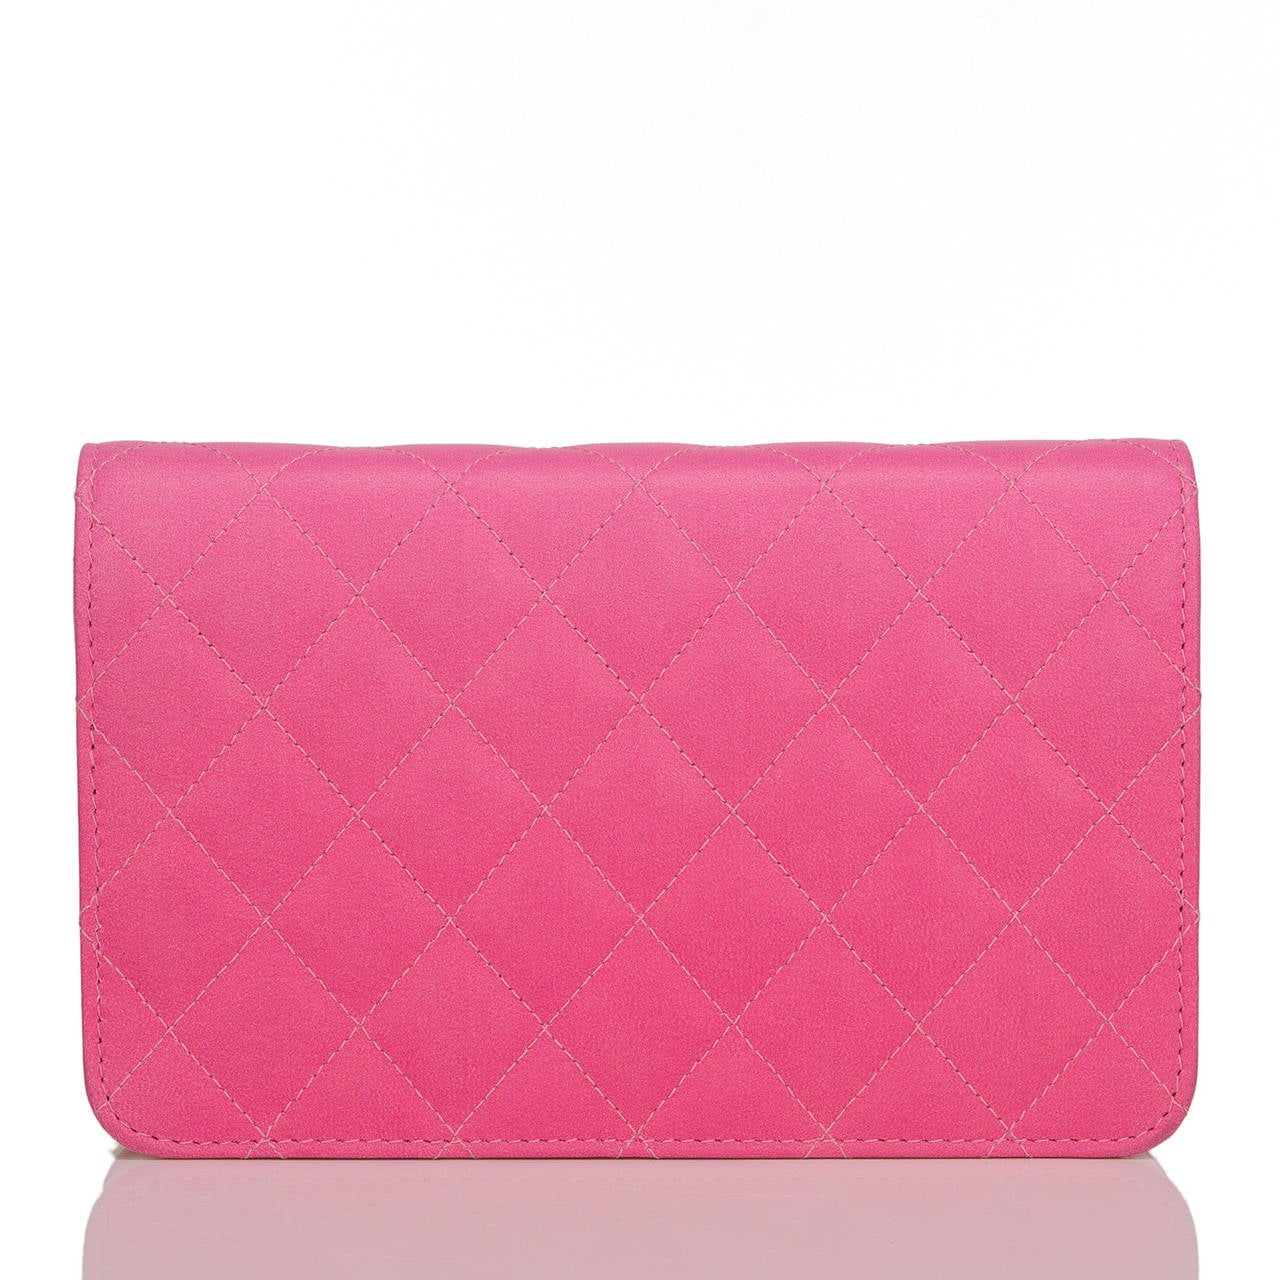 Chanel Bi-Color Pink Quilted Lambskin Wallet On Chain (WOC) In New Never_worn Condition For Sale In New York, NY